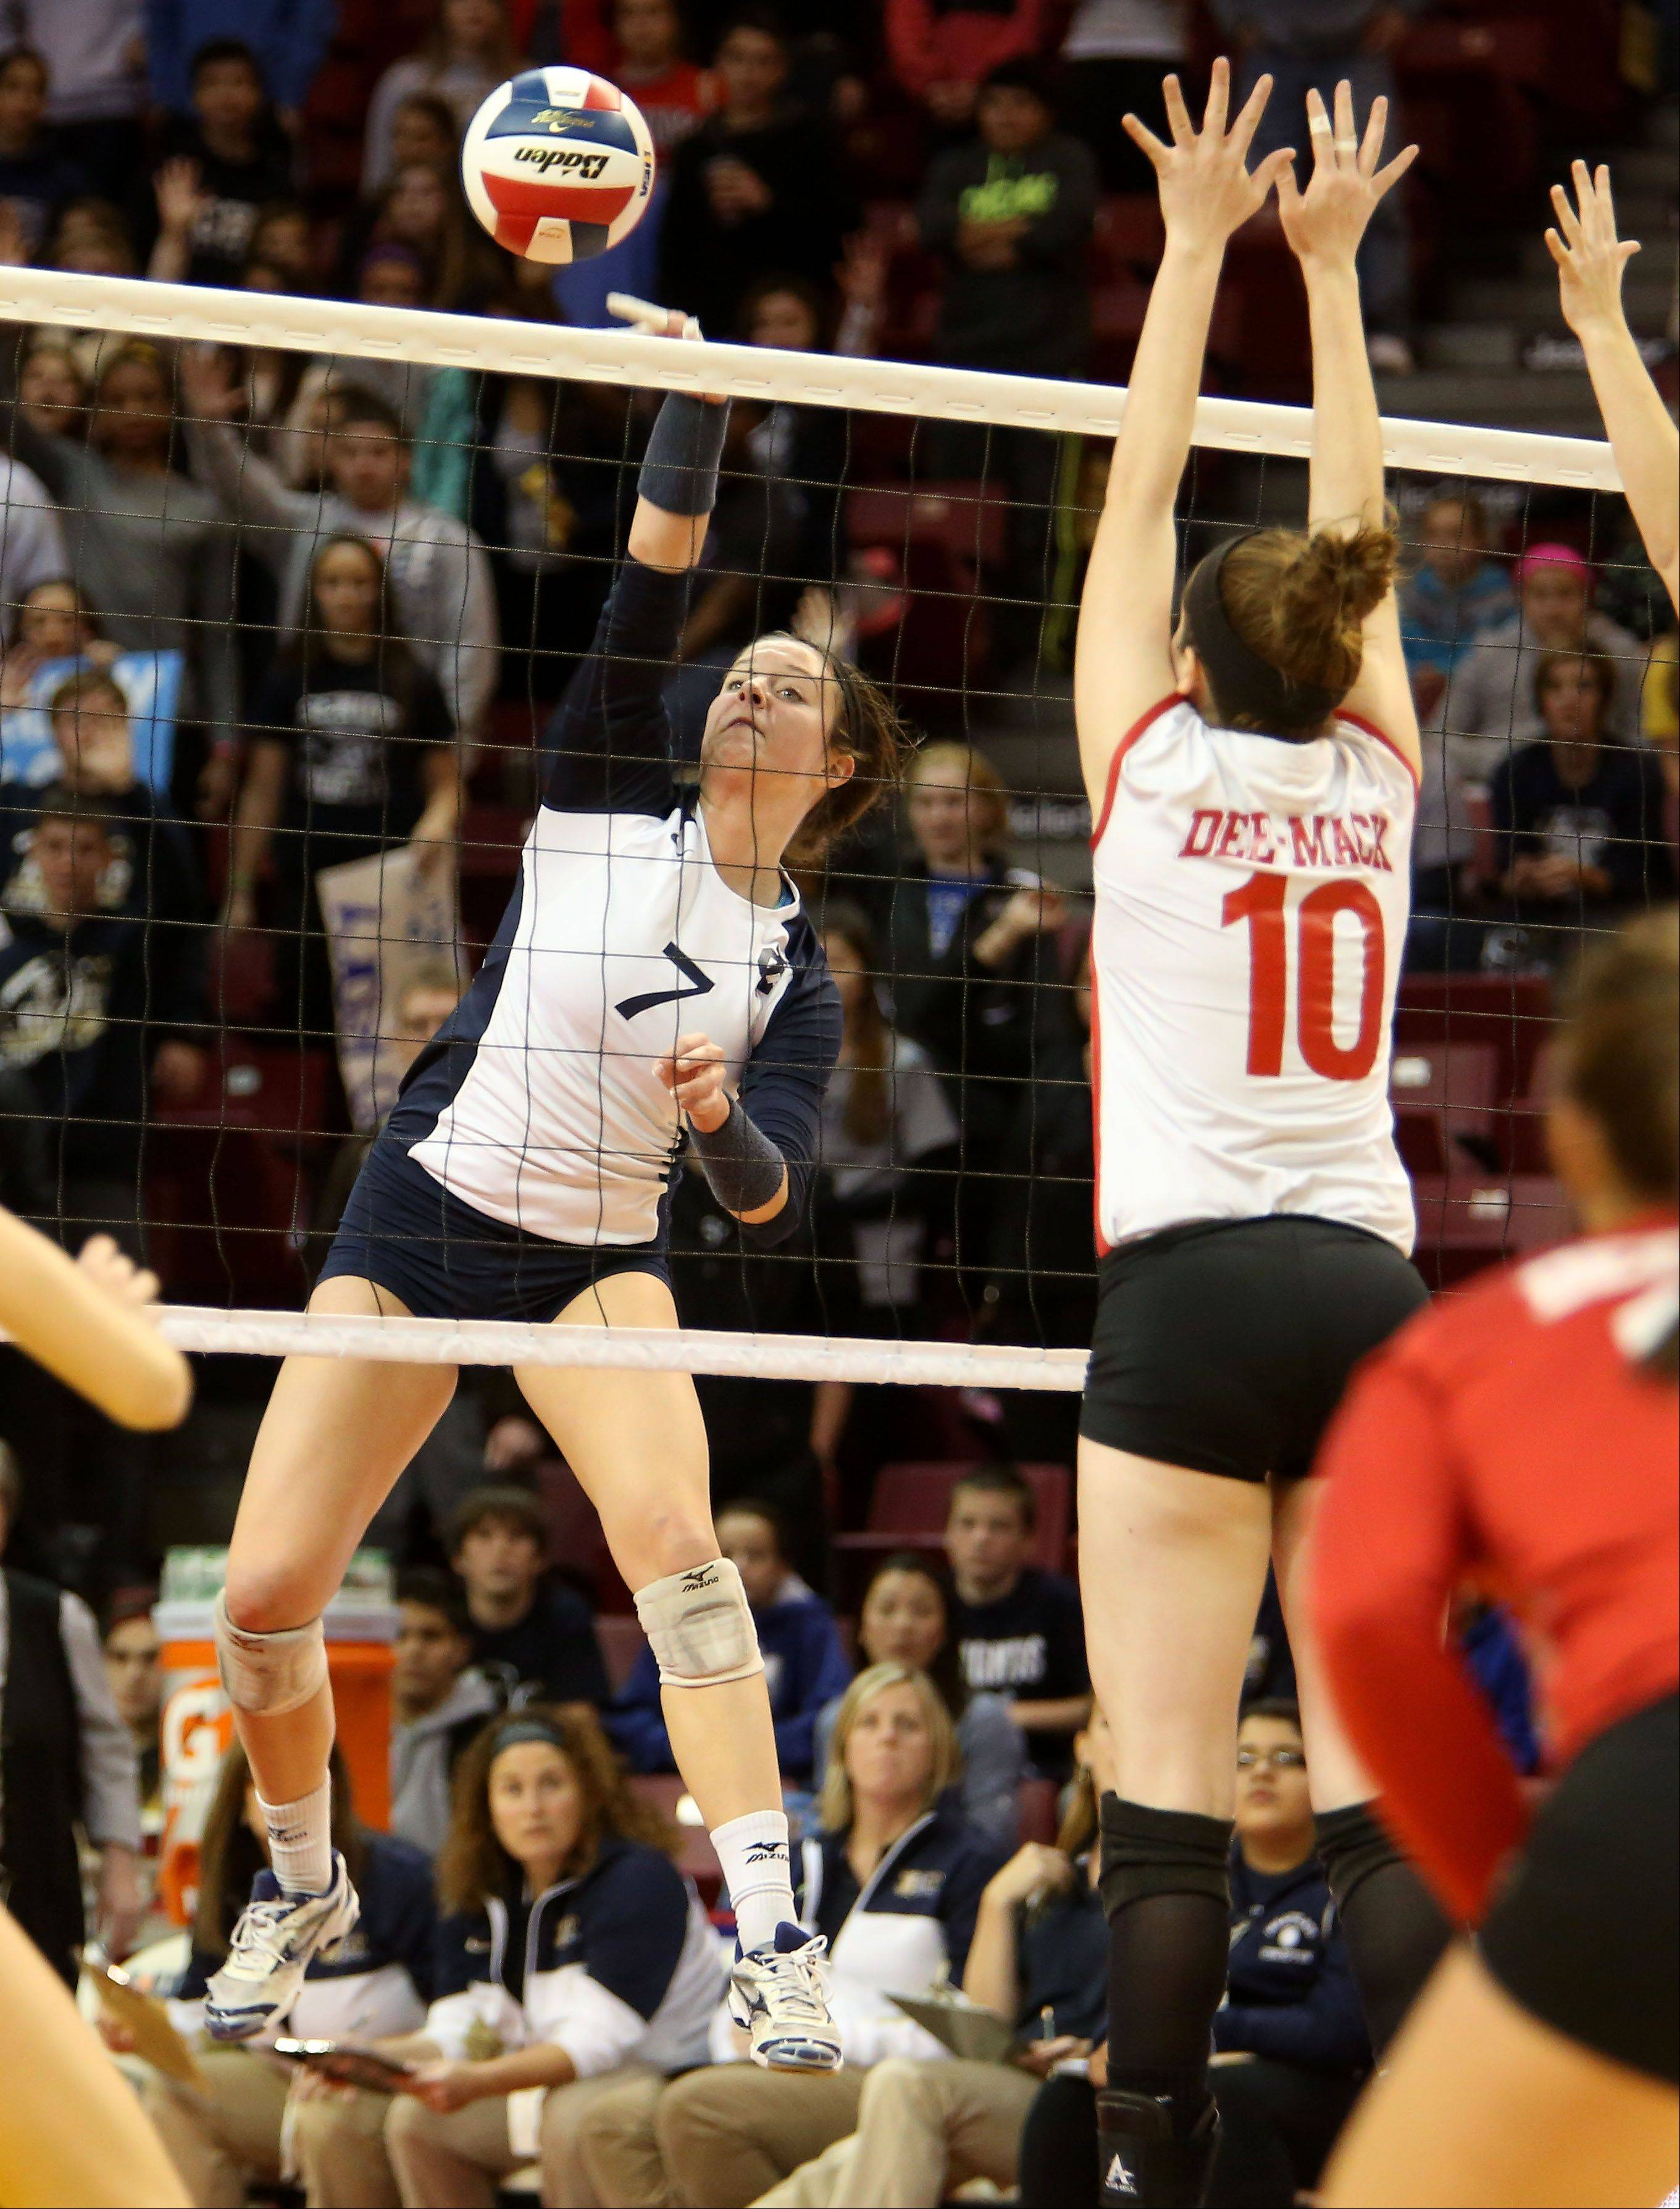 Delaney D'Amore of IC Catholic Prep spikes the ball to Deer Creek-Mackinaw in Class 2A state girls volleyball action on Friday in Normal.